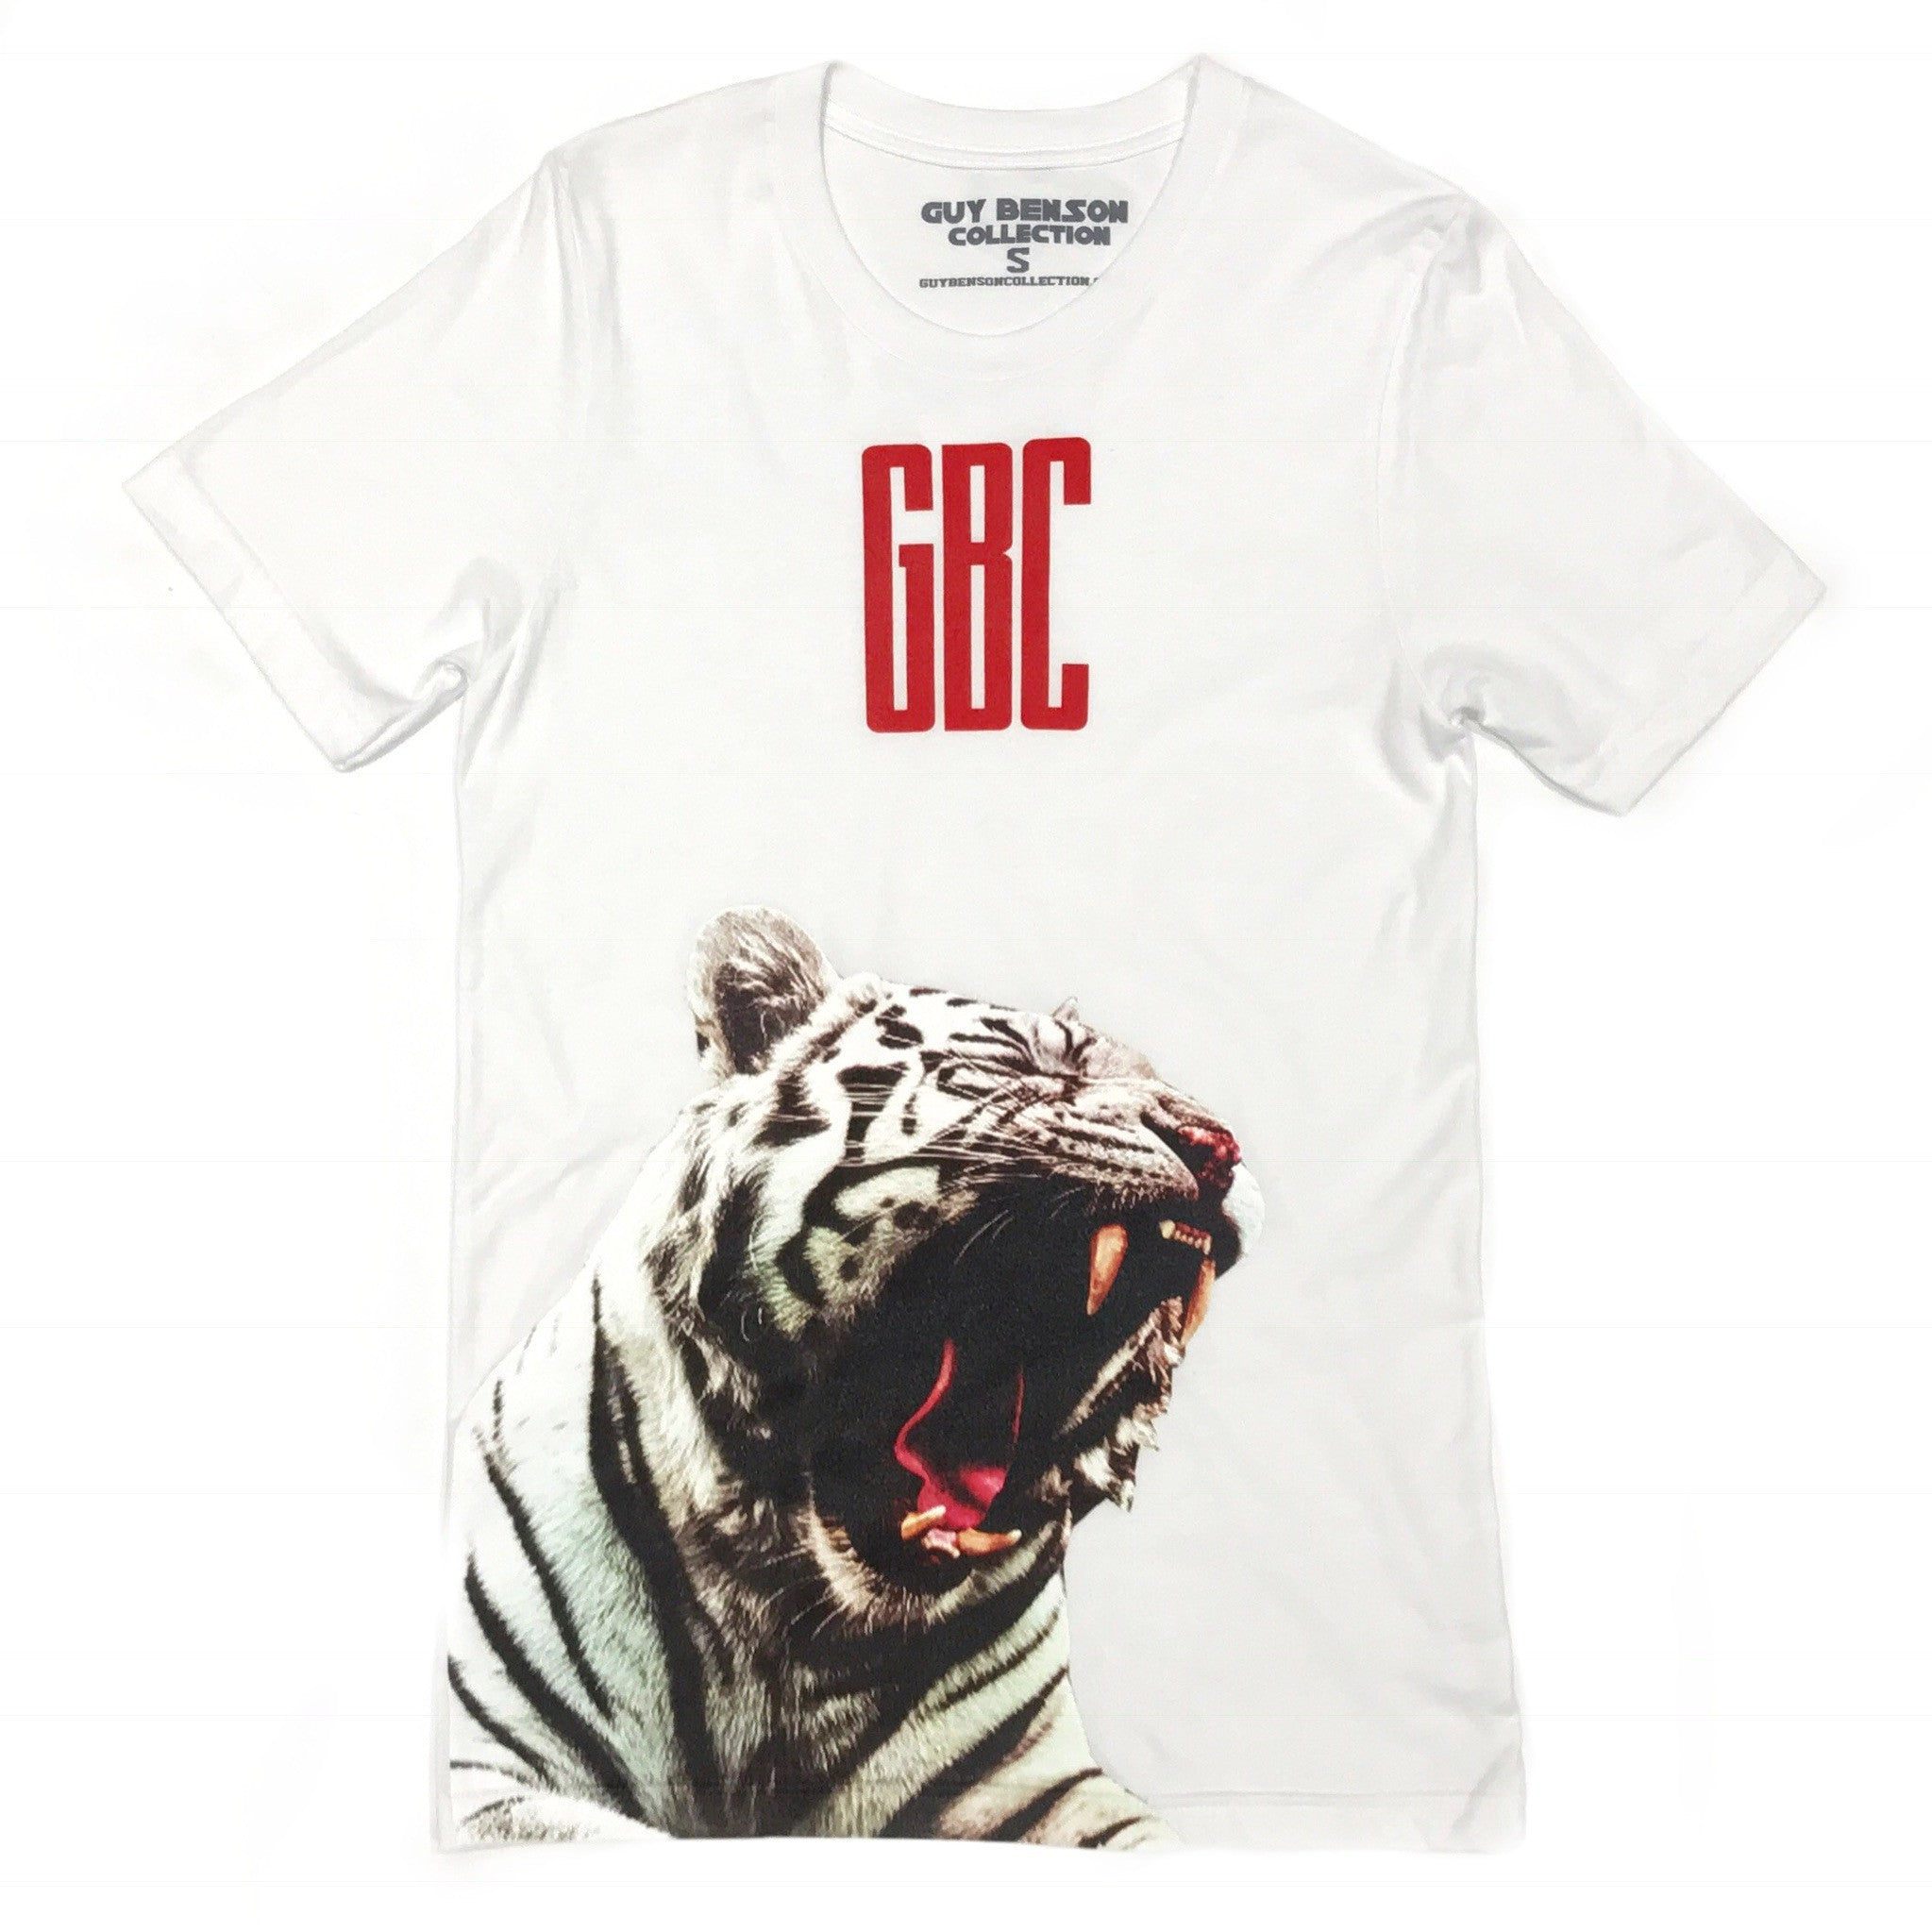 Guy Benson Collection White Tiger Tee - White